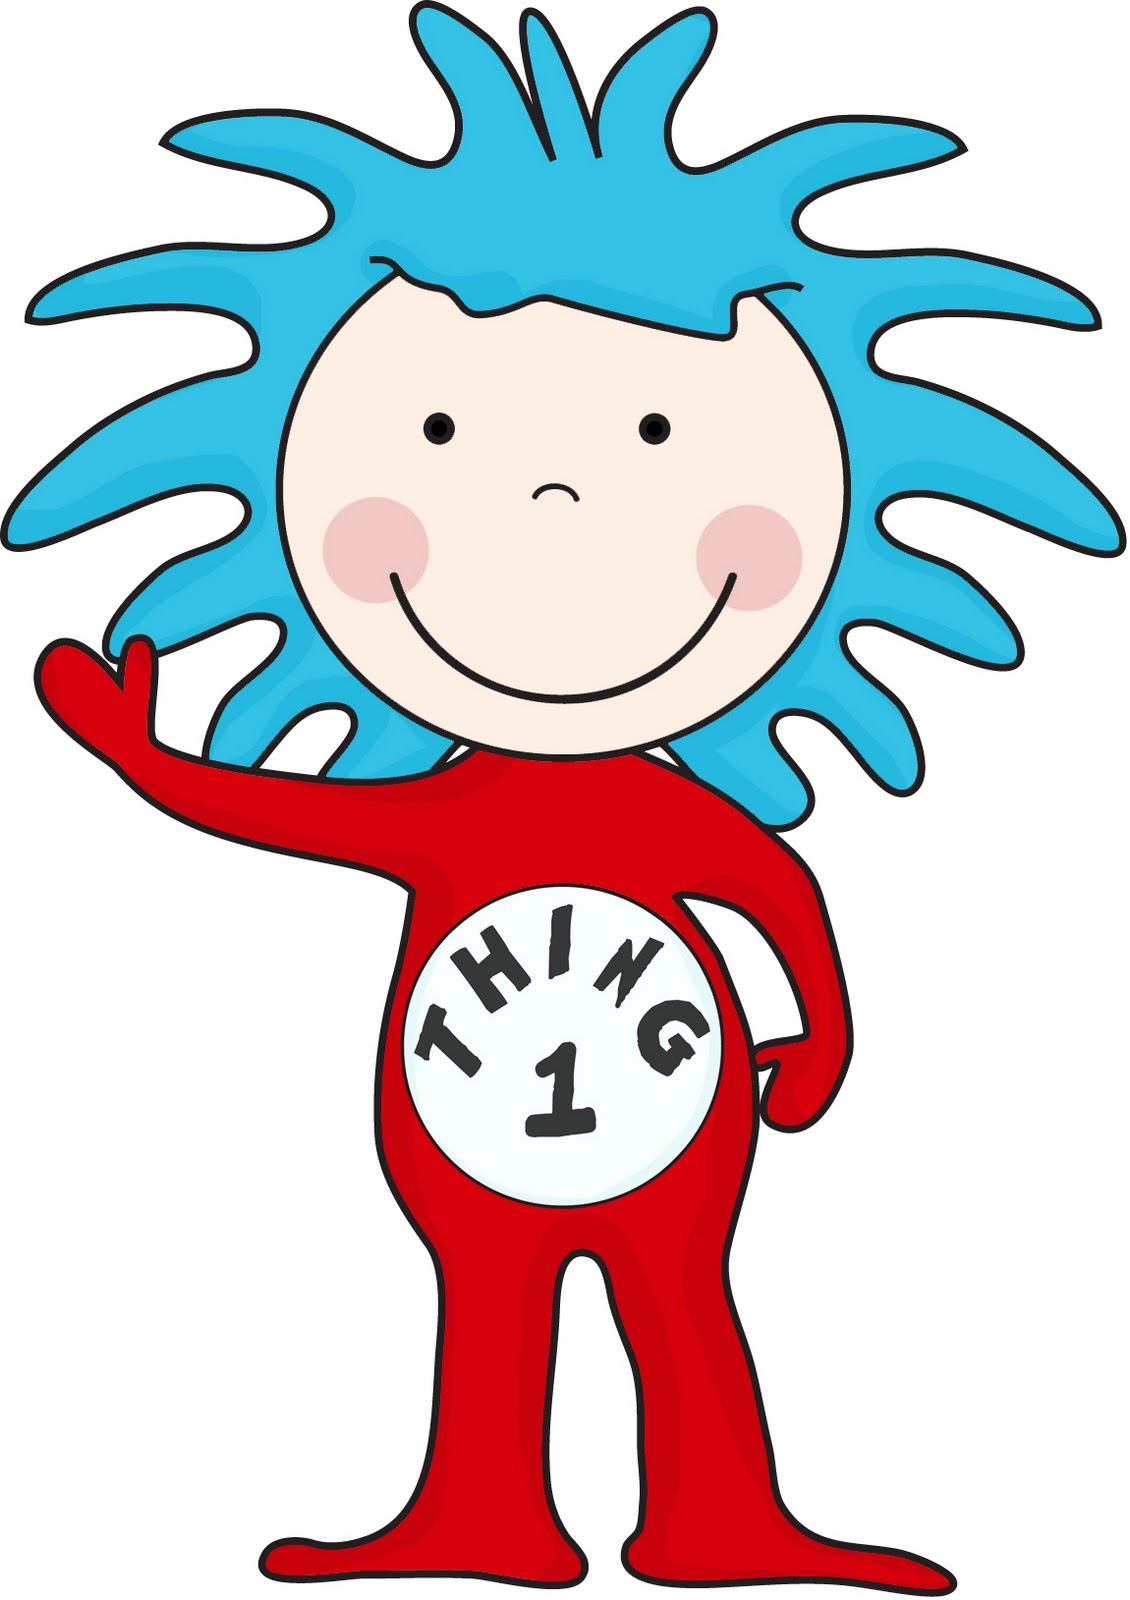 1130x1600 Thing 1 And Thing 2 Clip Art Many Interesting Cliparts